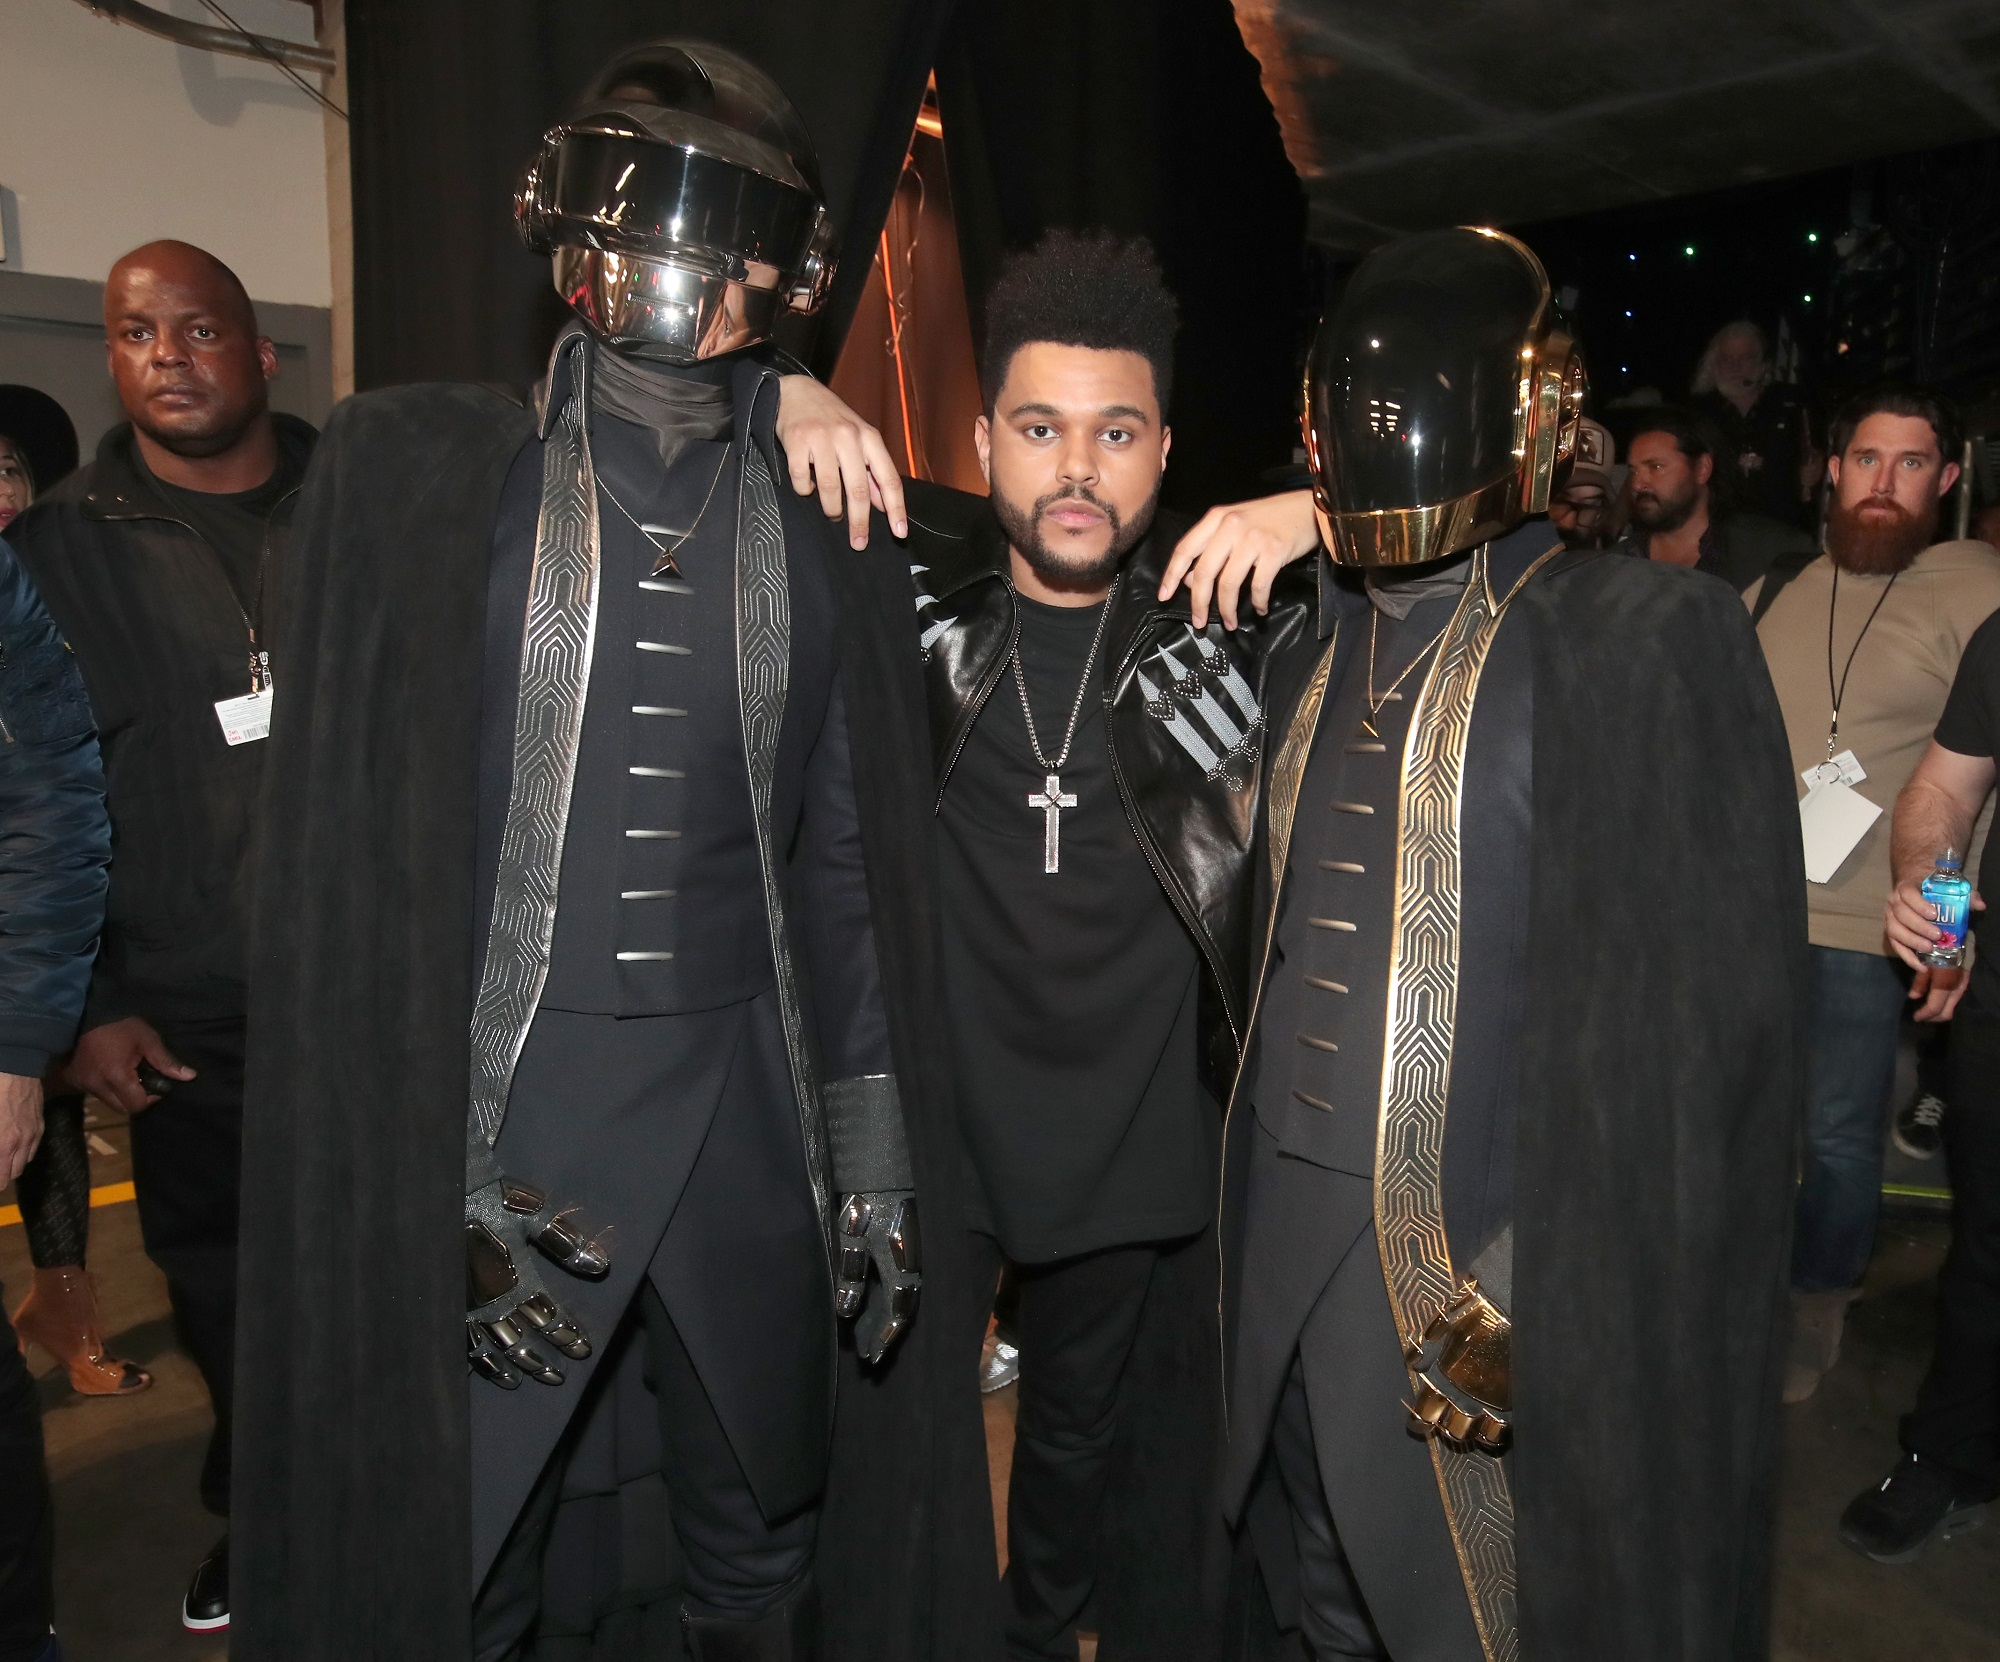 Daft Punk and The Weeknd